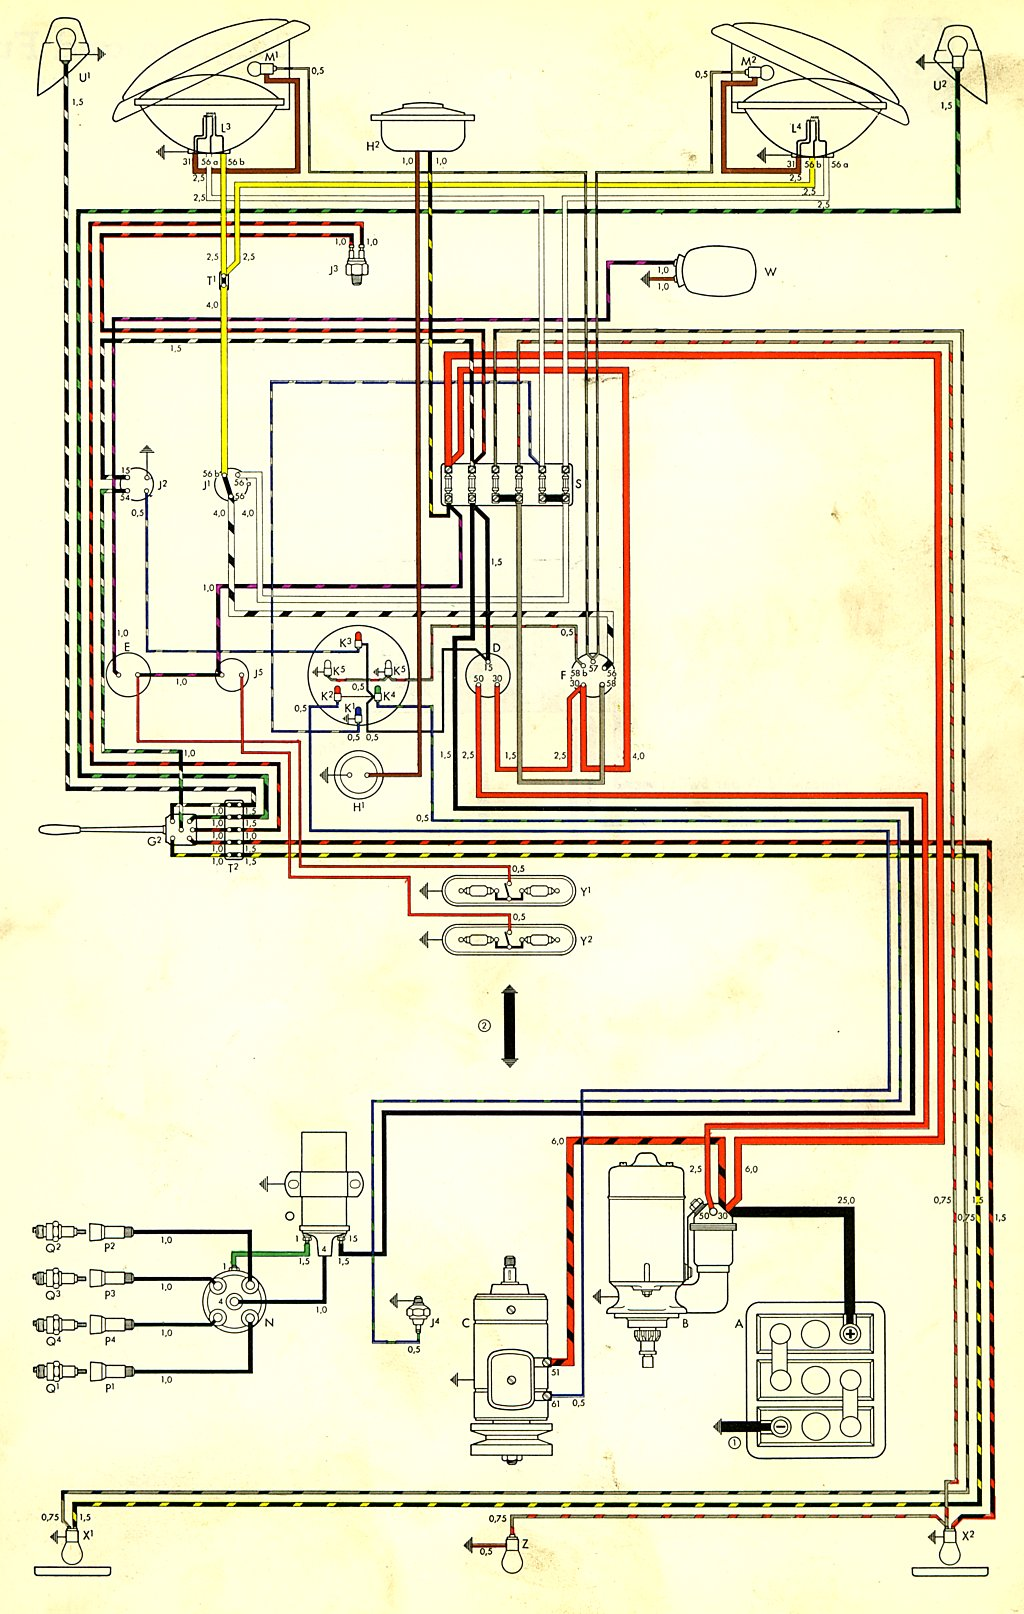 hight resolution of thesamba com type 2 wiring diagrams 1984 vw vanagon wiring diagram vw vanagon fuse diagram